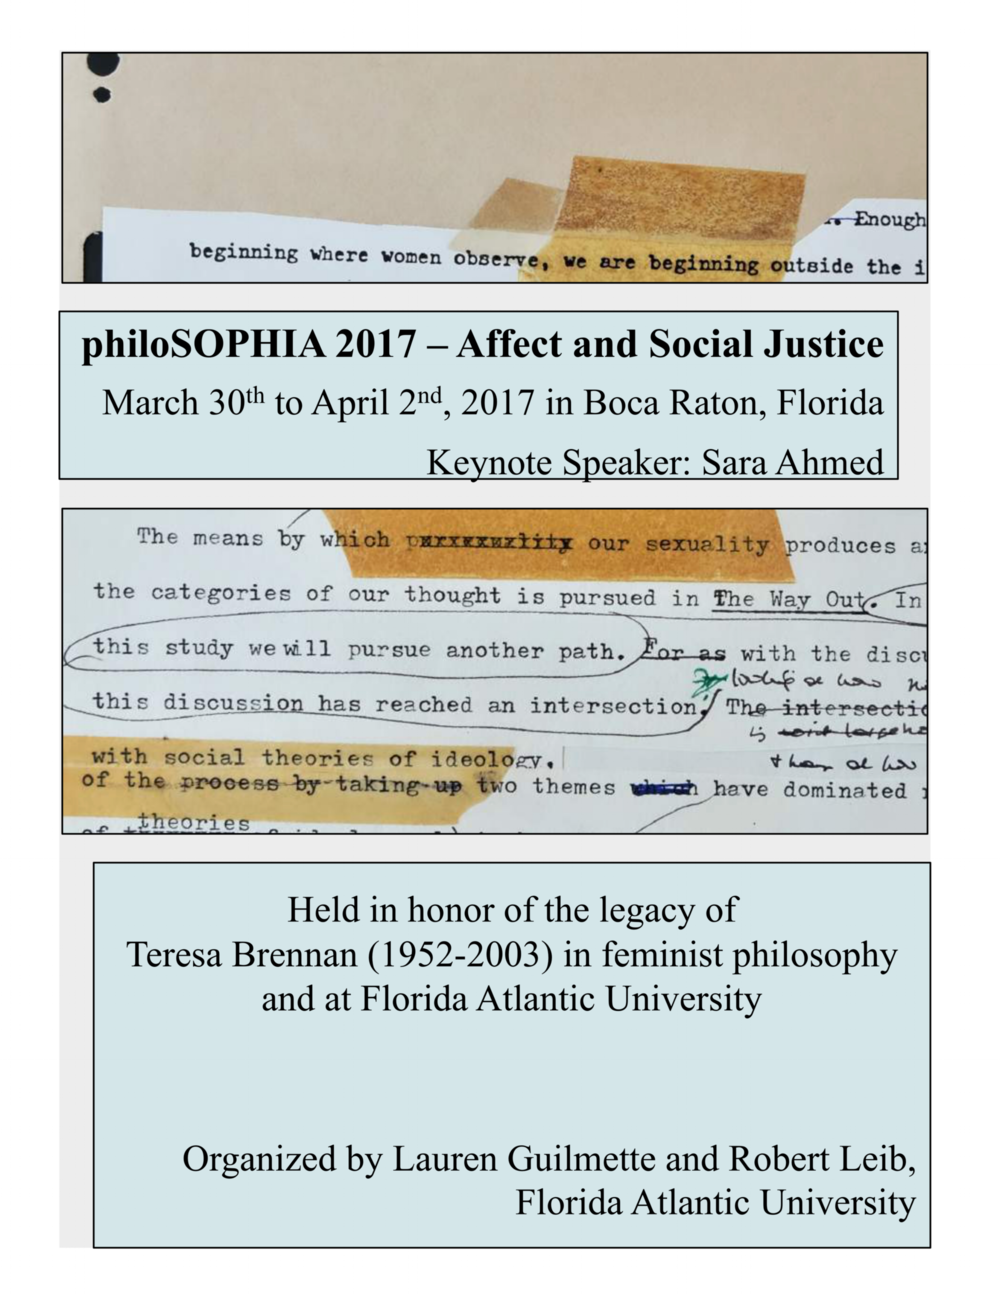 PhiloSOPHIA Program 2017 image.png